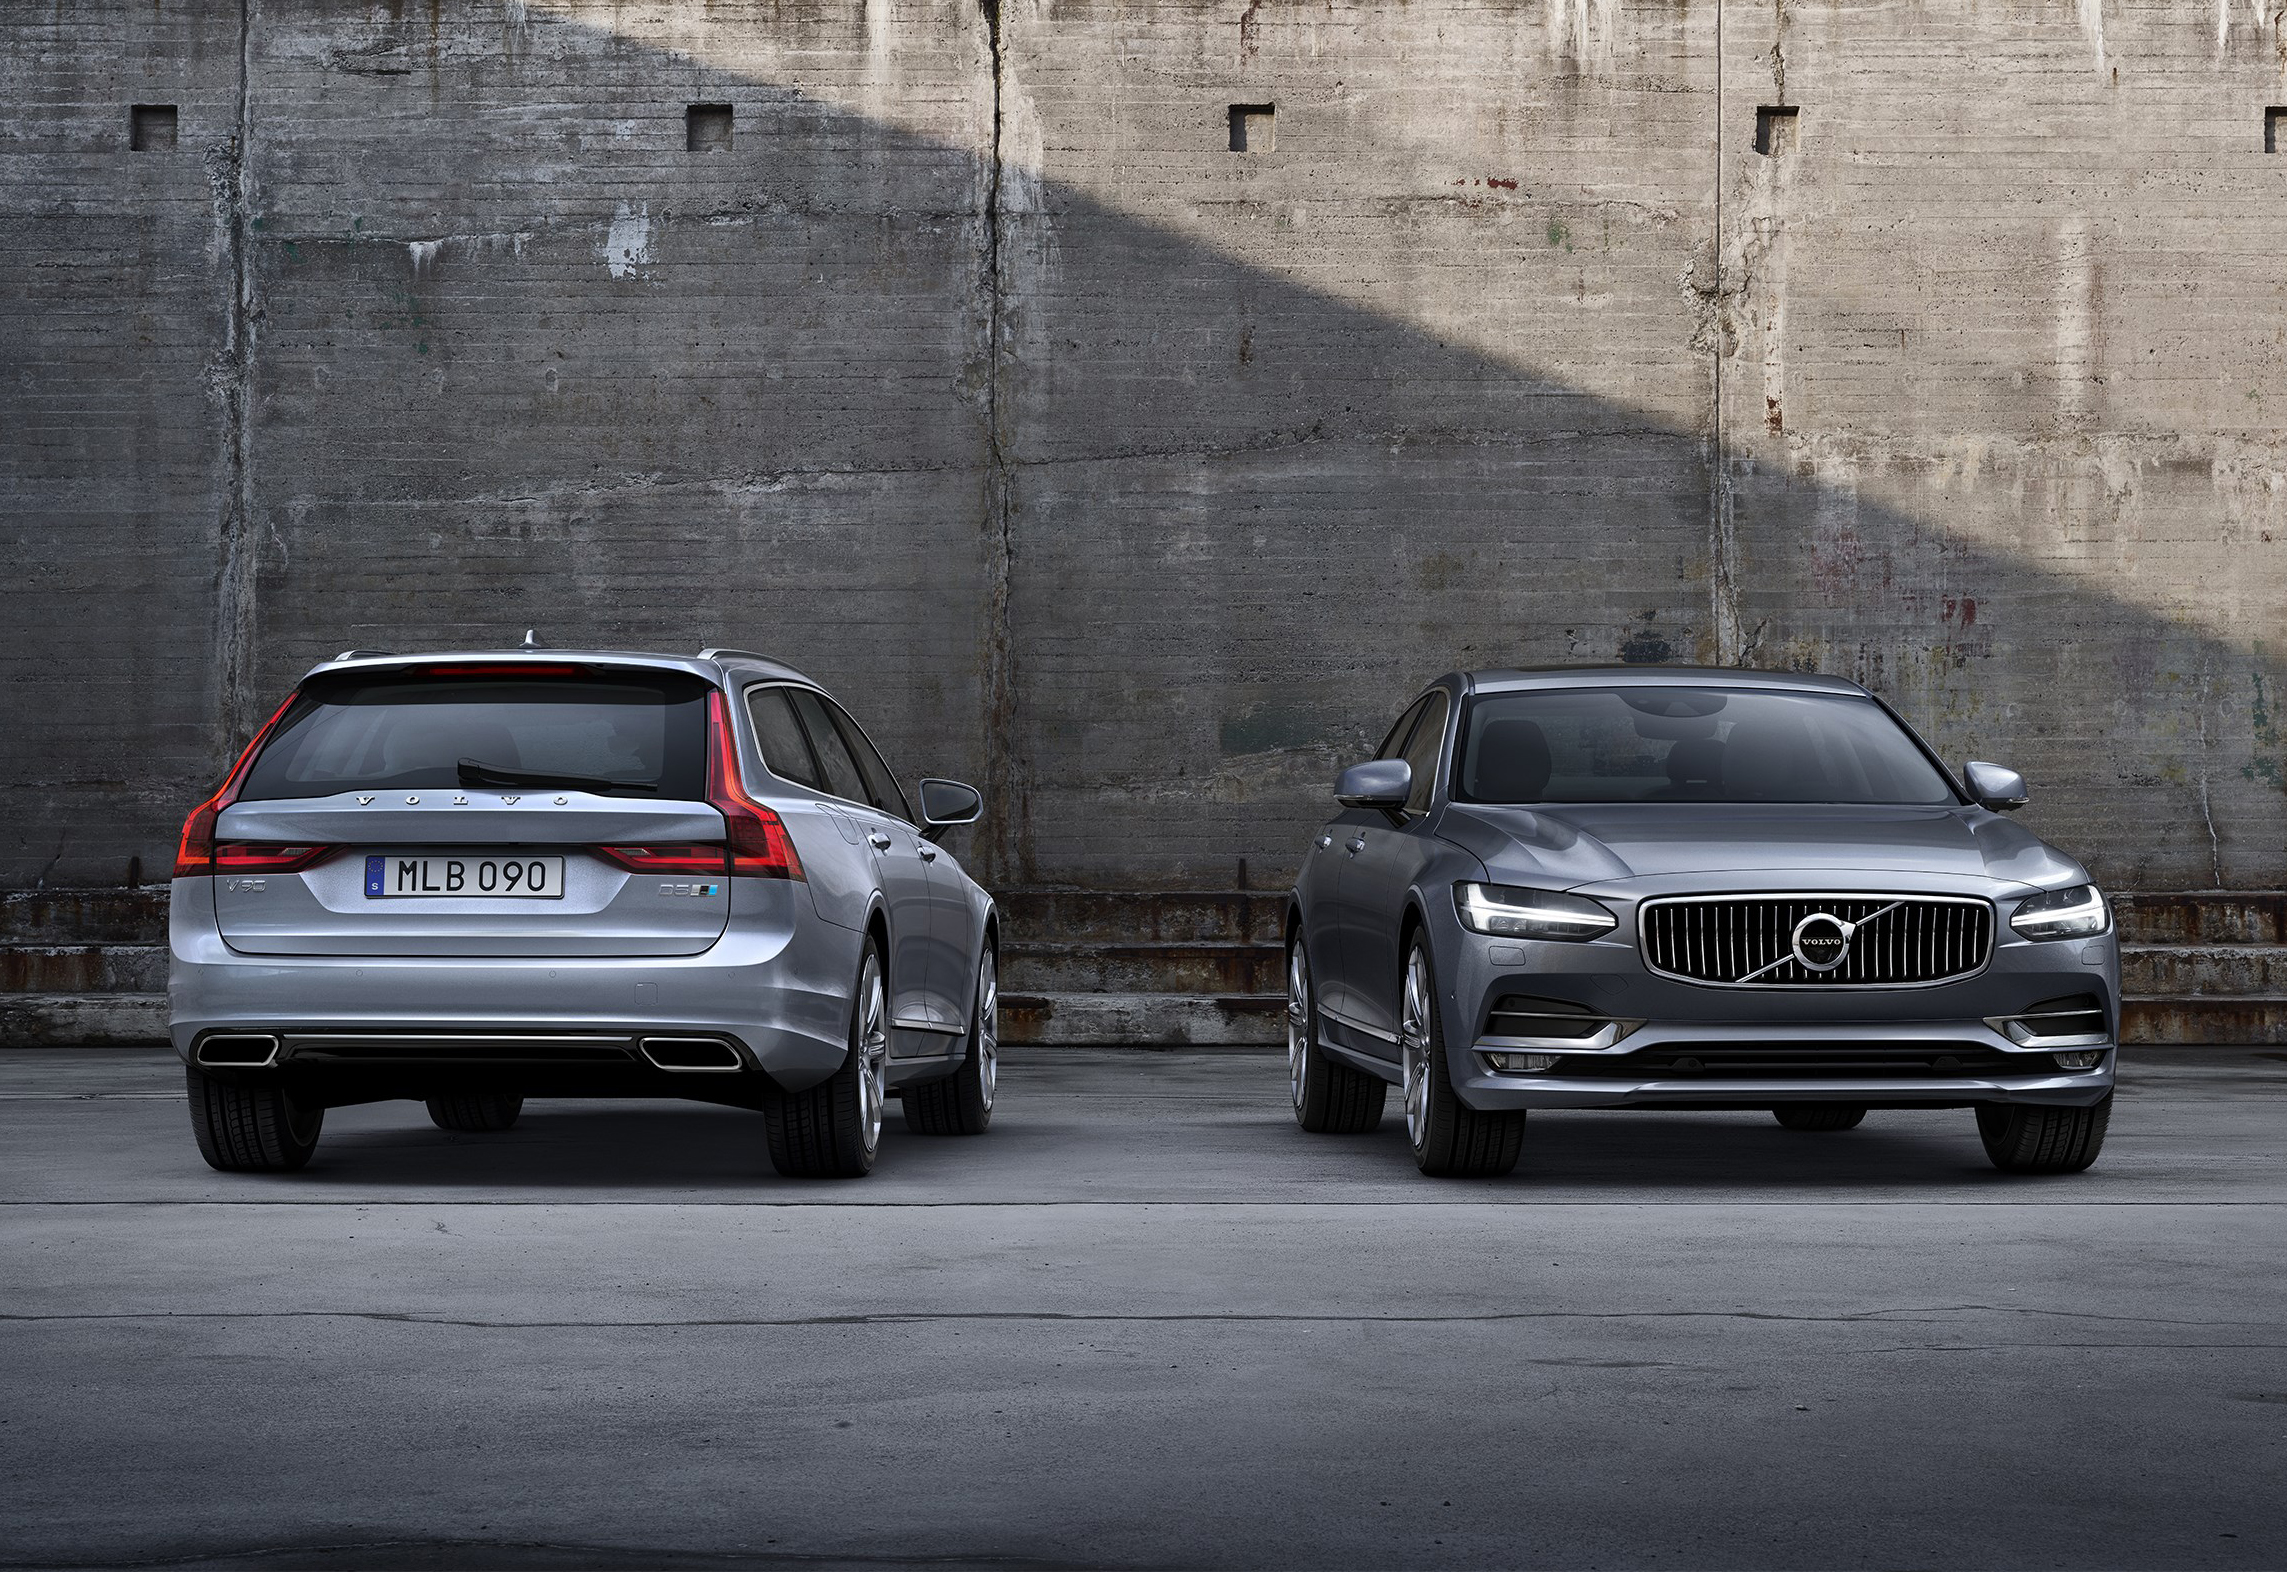 193455_New_Polestar_performance_package_now_available_for_the_Volvo_S90_and_V90.jpg